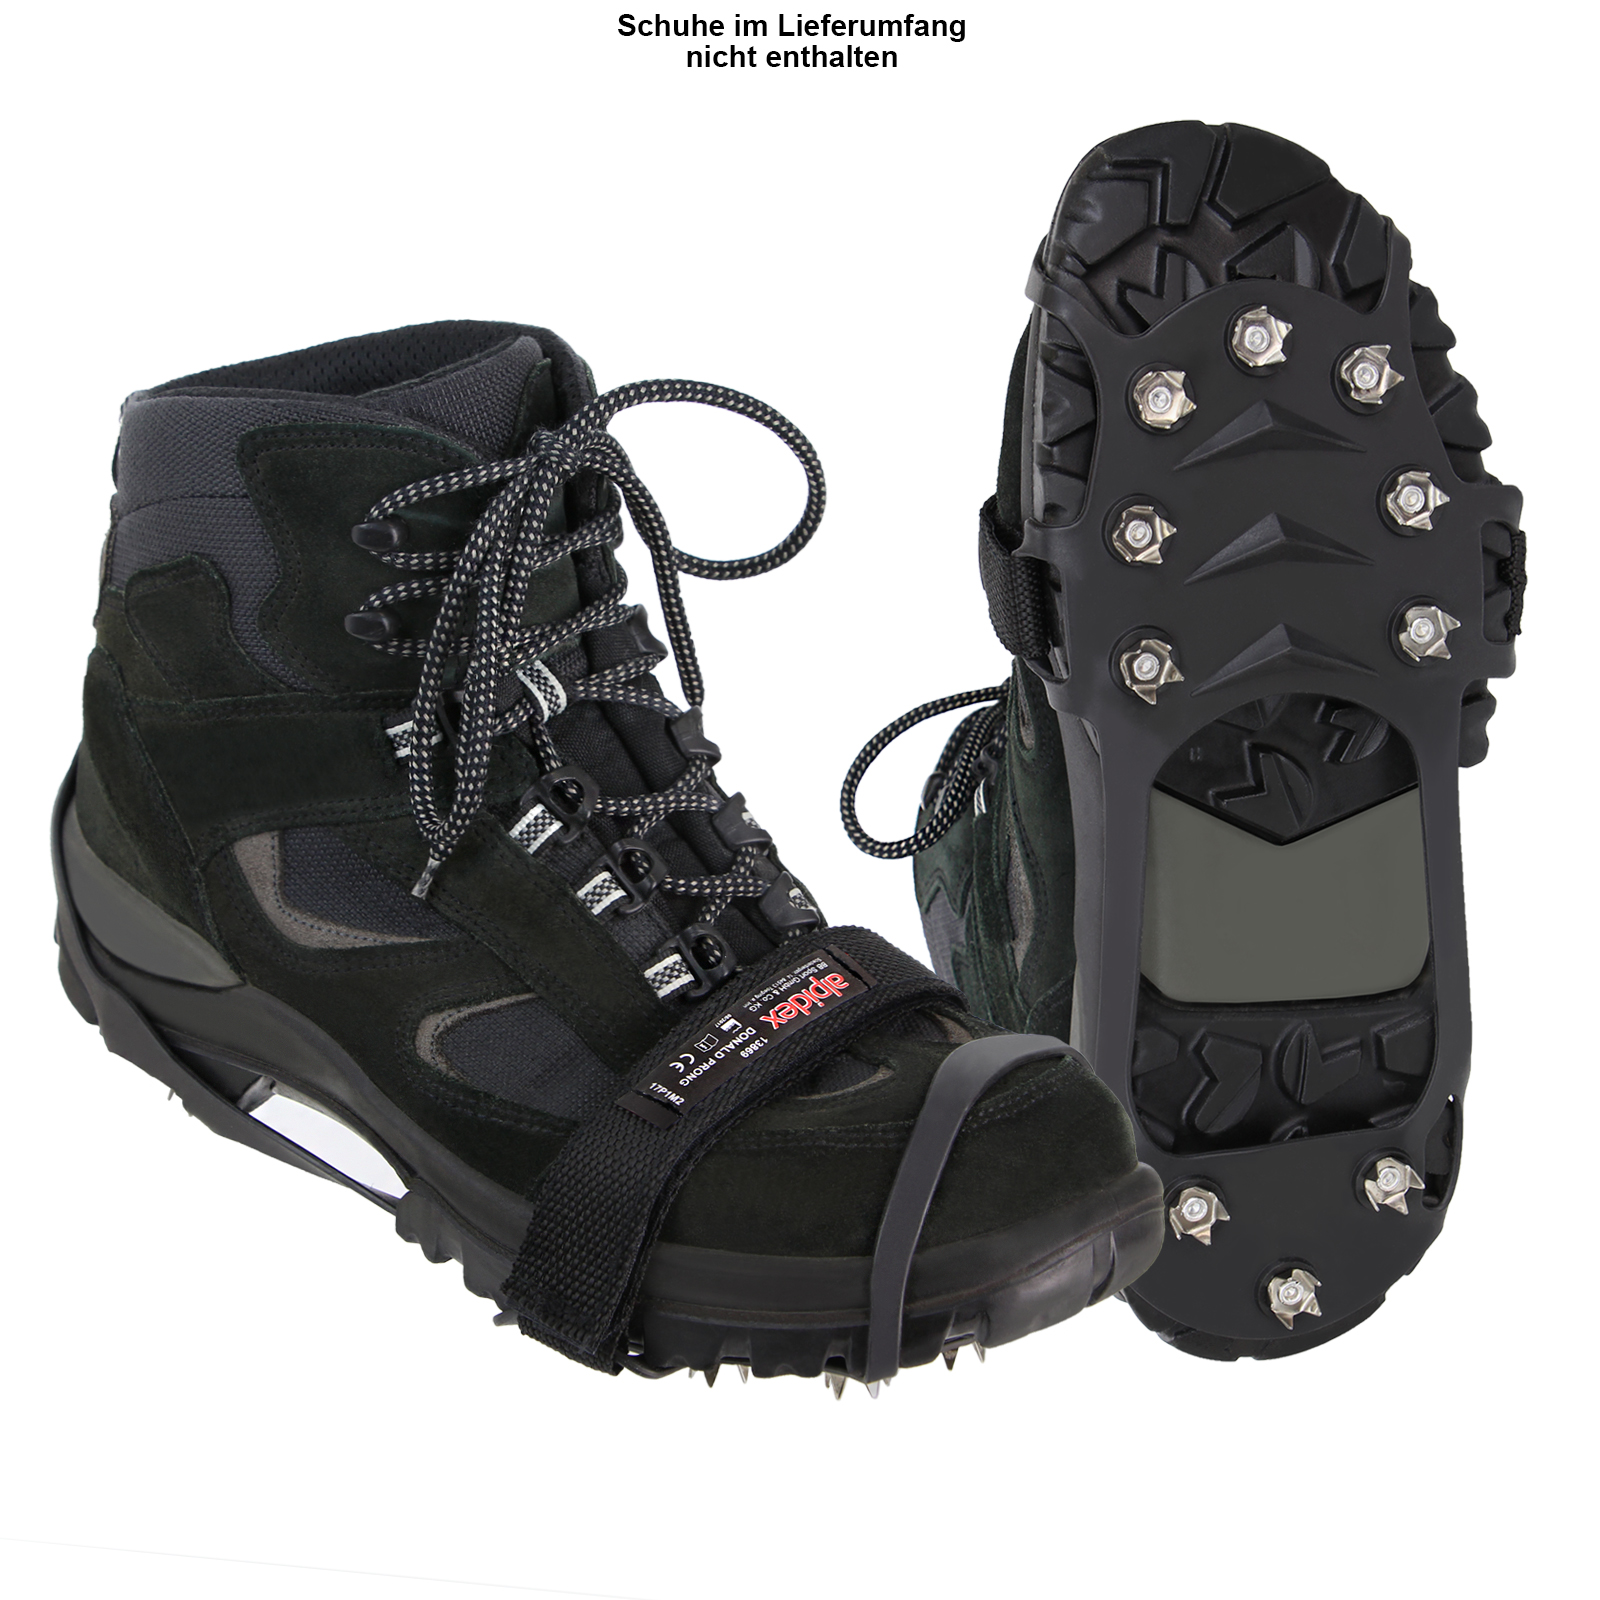 Anti Rutsch Teppich Outdoor Anti Rutsch Schuh Spikes Donald Prong Ice Grips In